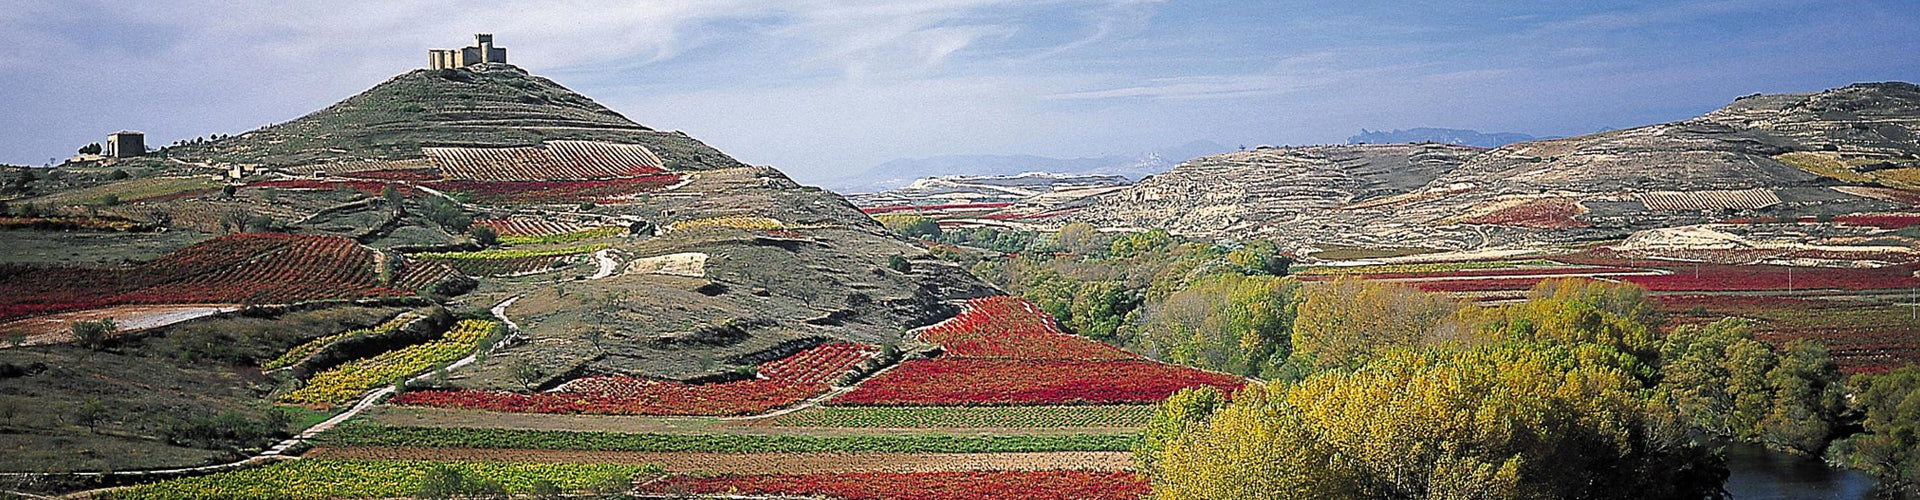 Rioja Vineyards in the Ebro River Valley Region of Spain